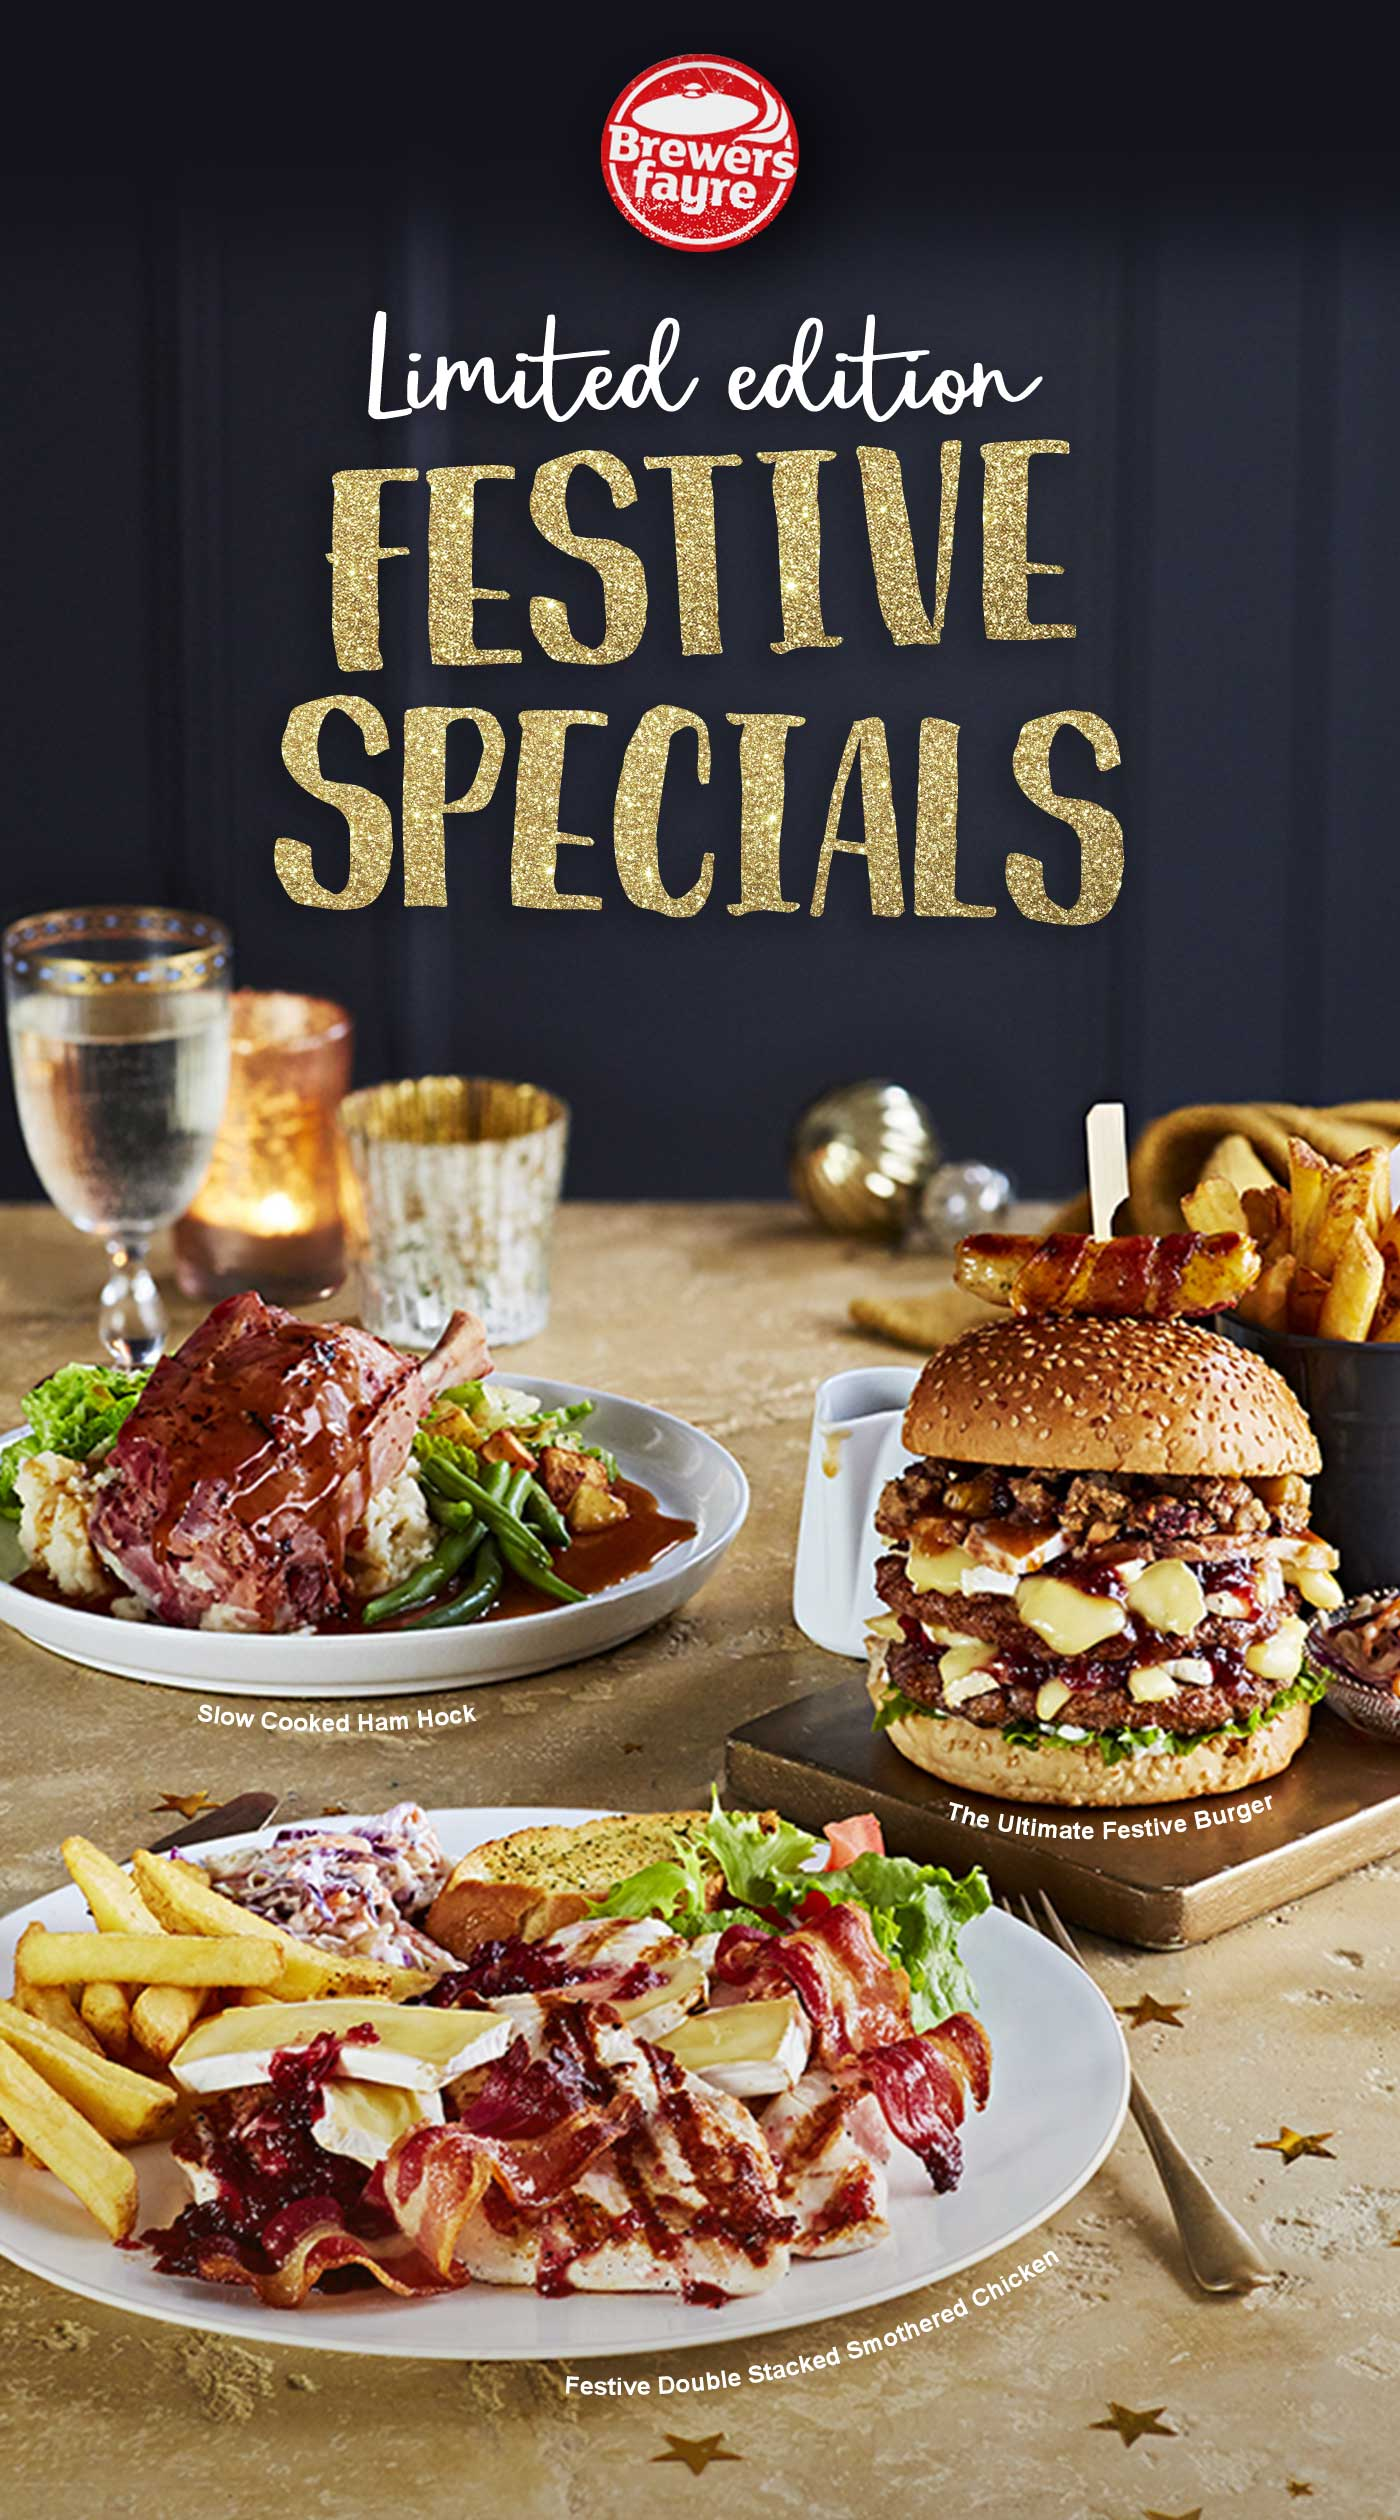 LIMITED EDITION FESTIVE SPECIALS